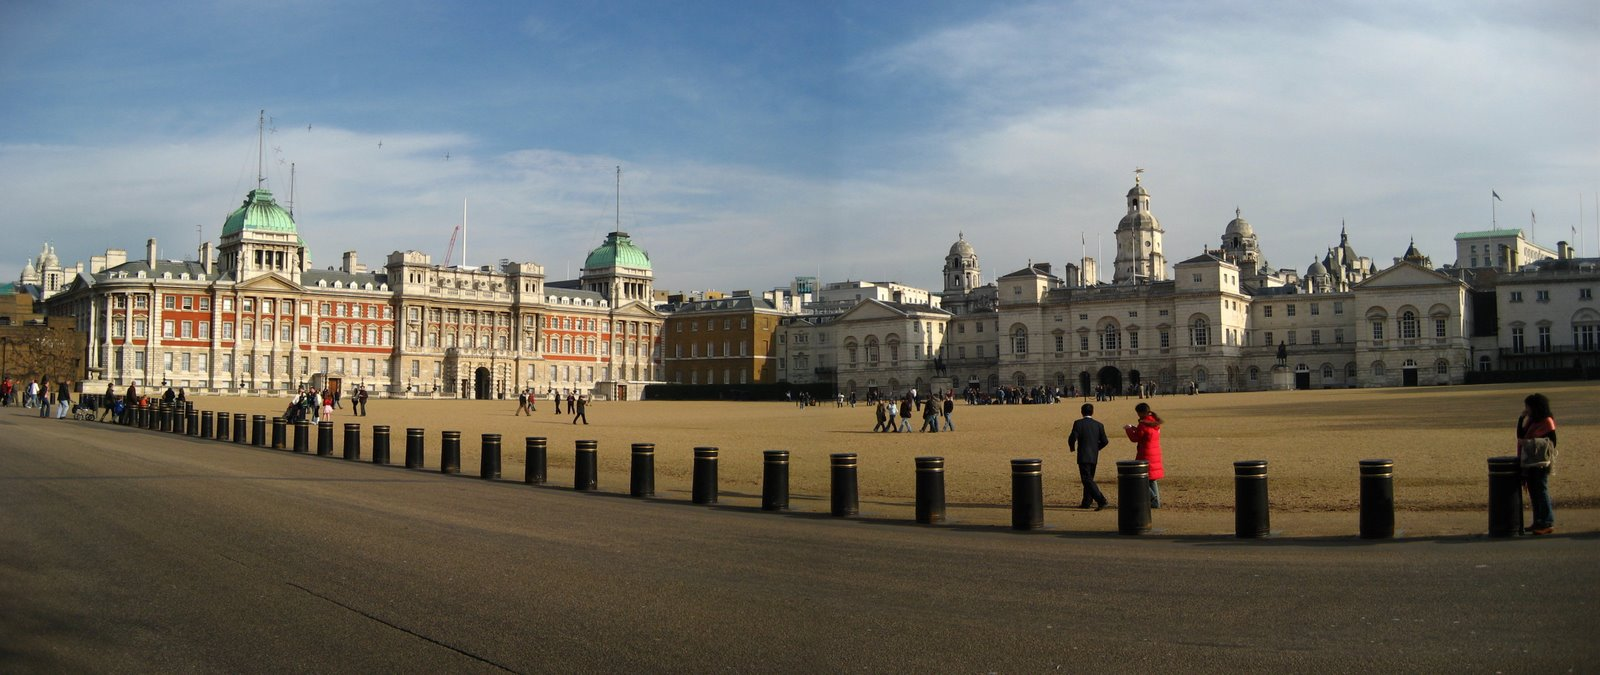 [horseguards]